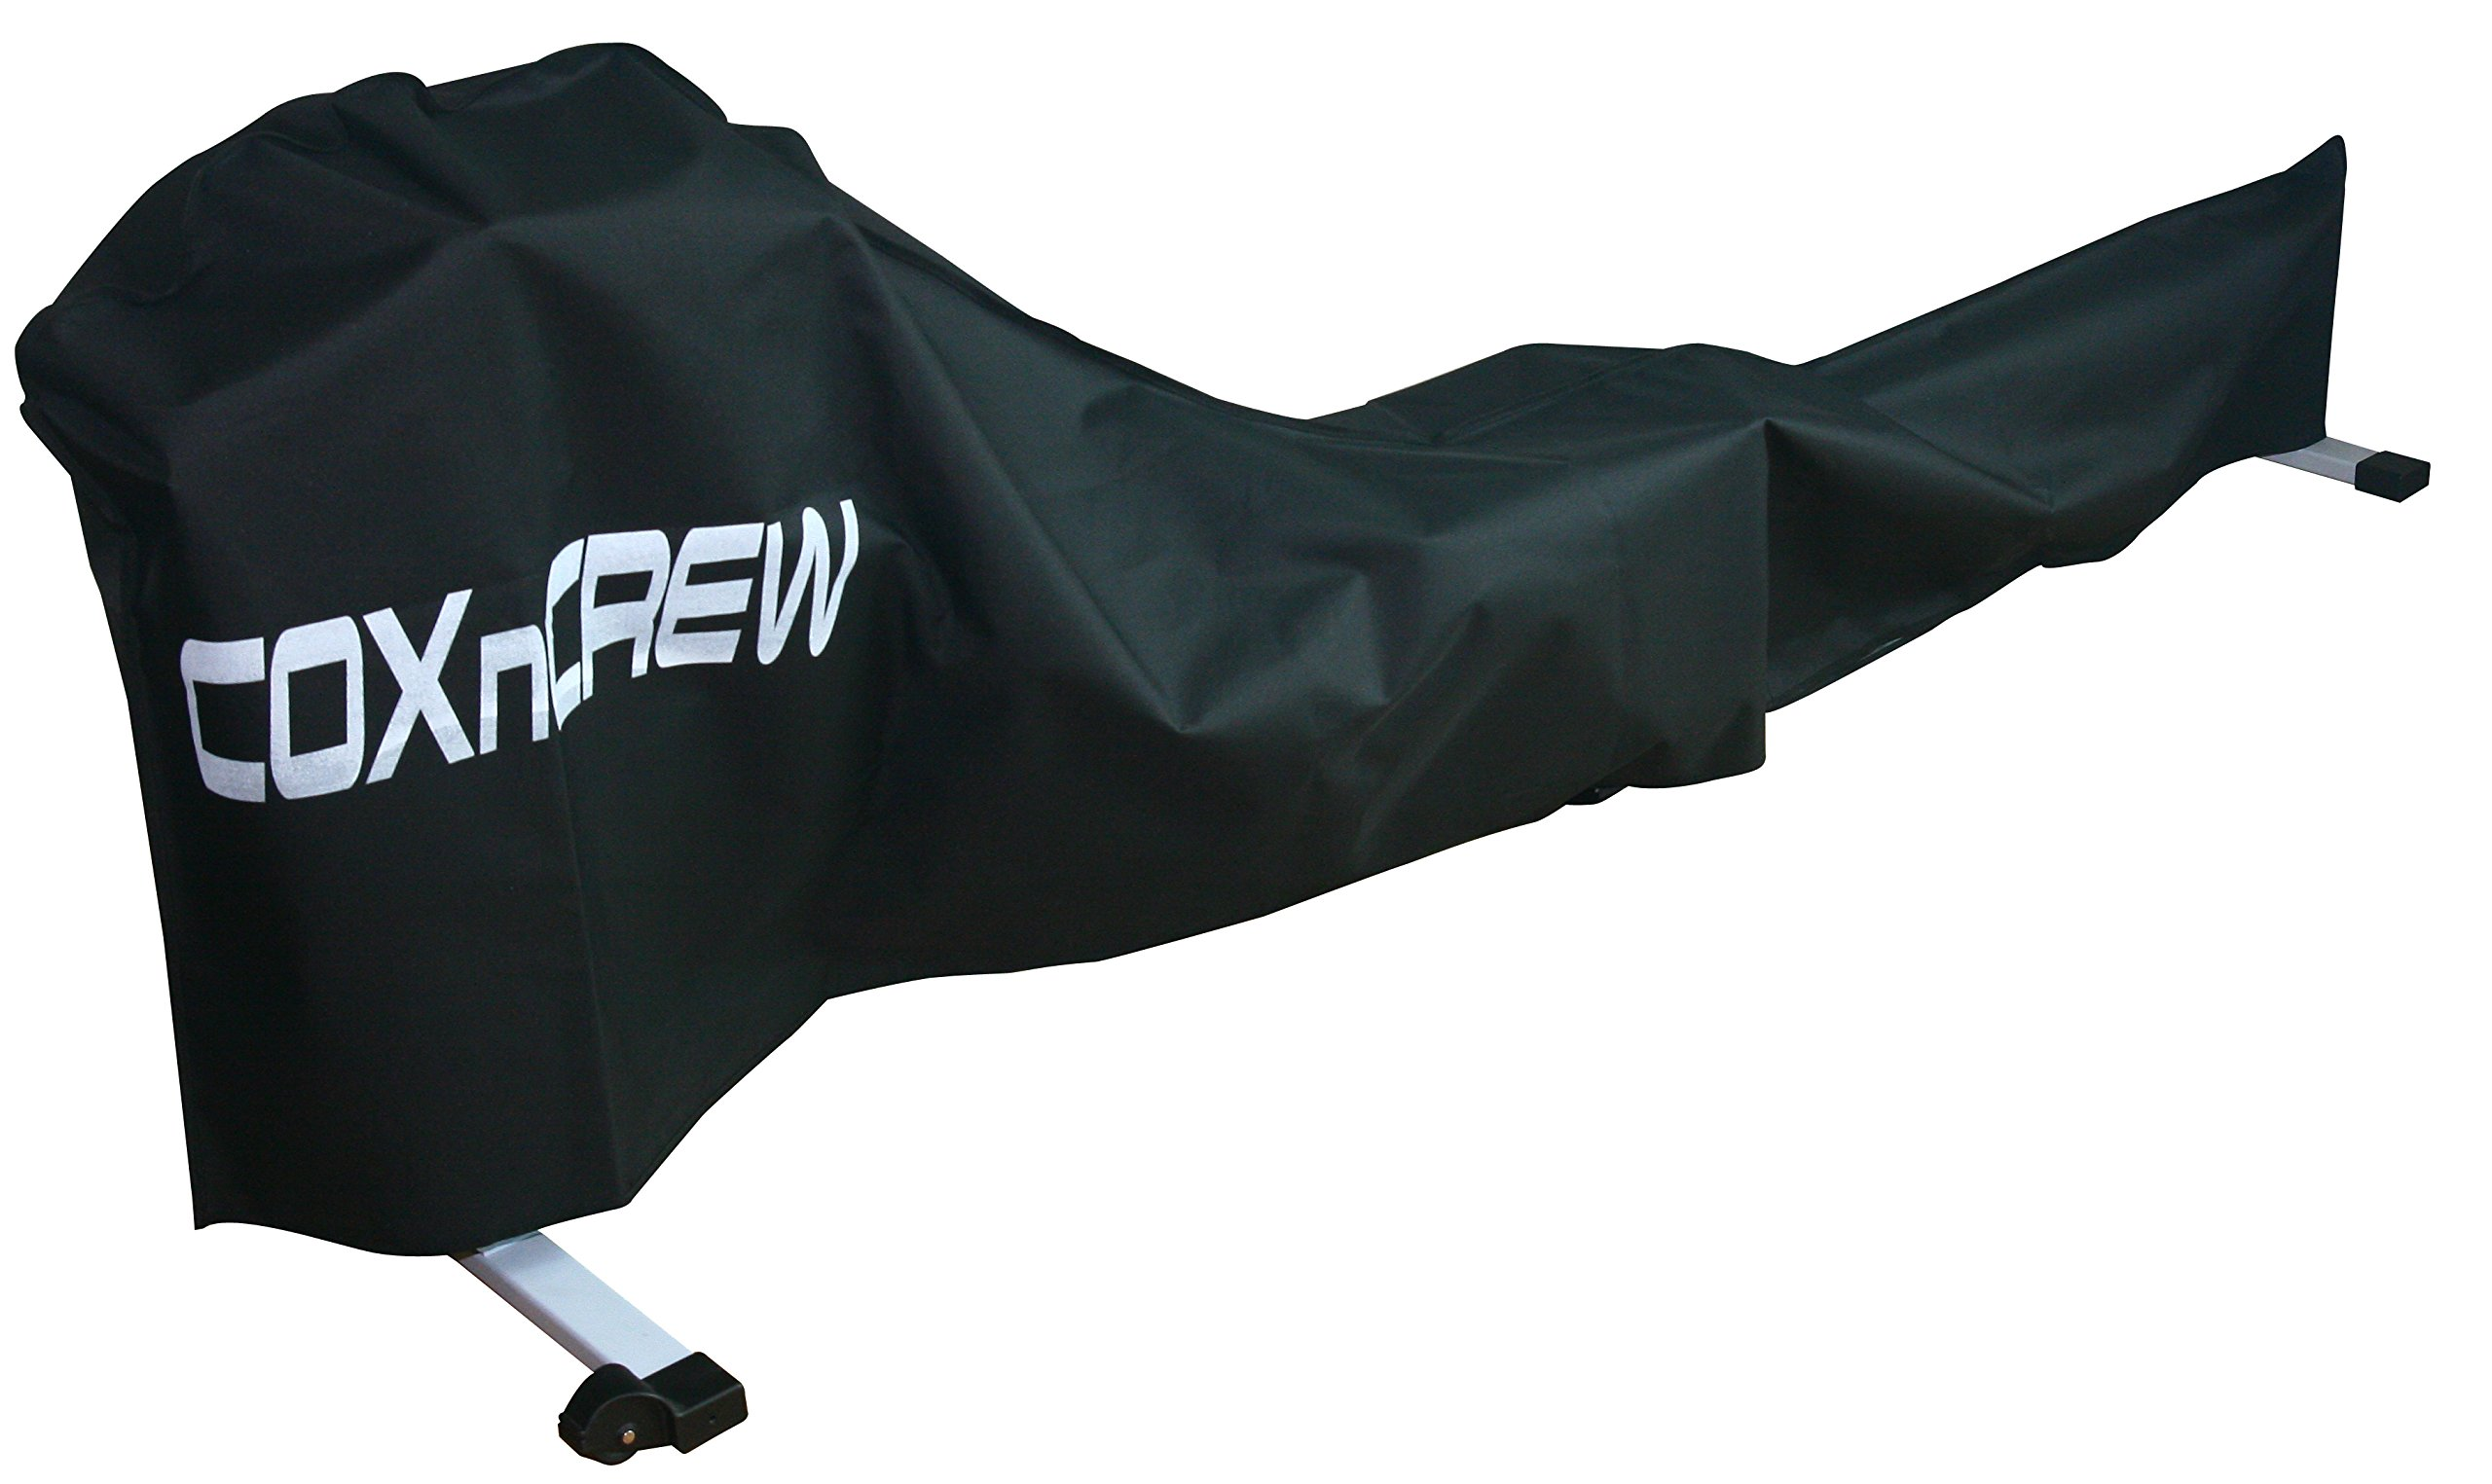 Coxncrew Durable Rowing Machine Cover Perfectly Fits With Concept 2 Model C/D